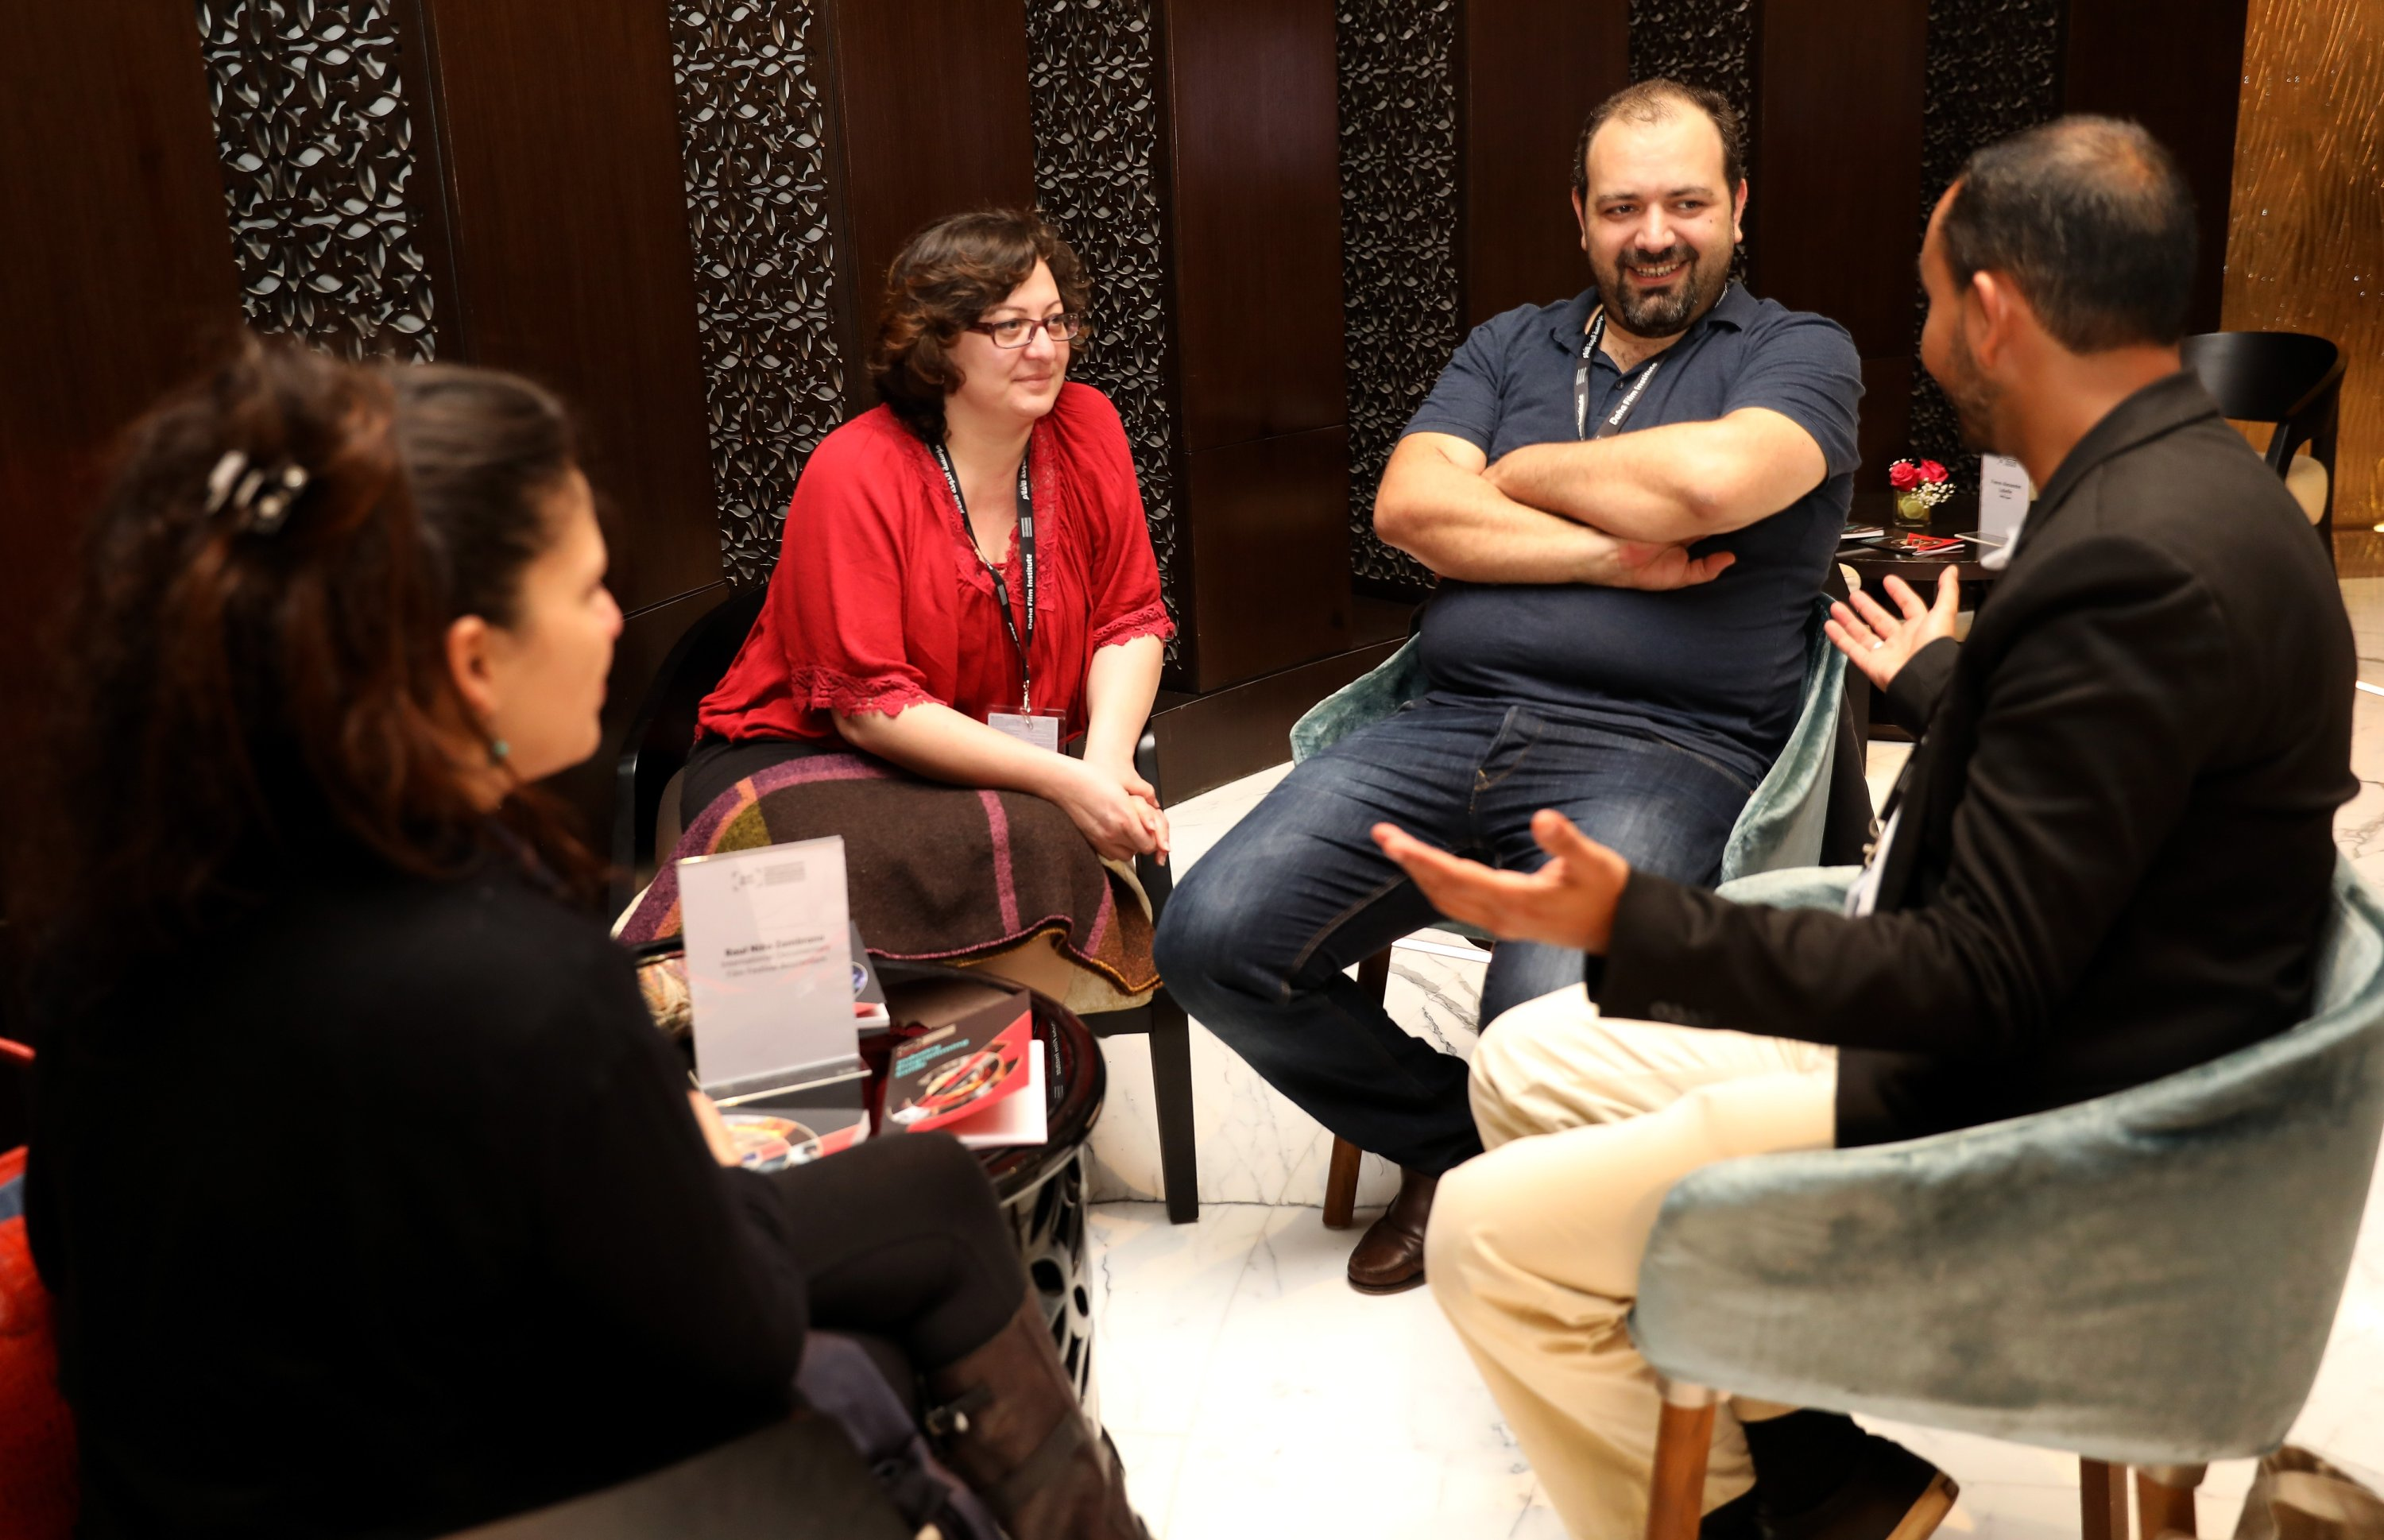 Director Diana El Jeiroudi (second left) and producer Orwa Nyrabia (second right) meet with Raul Nino Zambrano (R) from International Documentary Film Festival Amsterdam during a one-on-one session on day three of the 3rd Qumra Festival on March 5, 2017, in Doha, Qatar. (Getty Images)